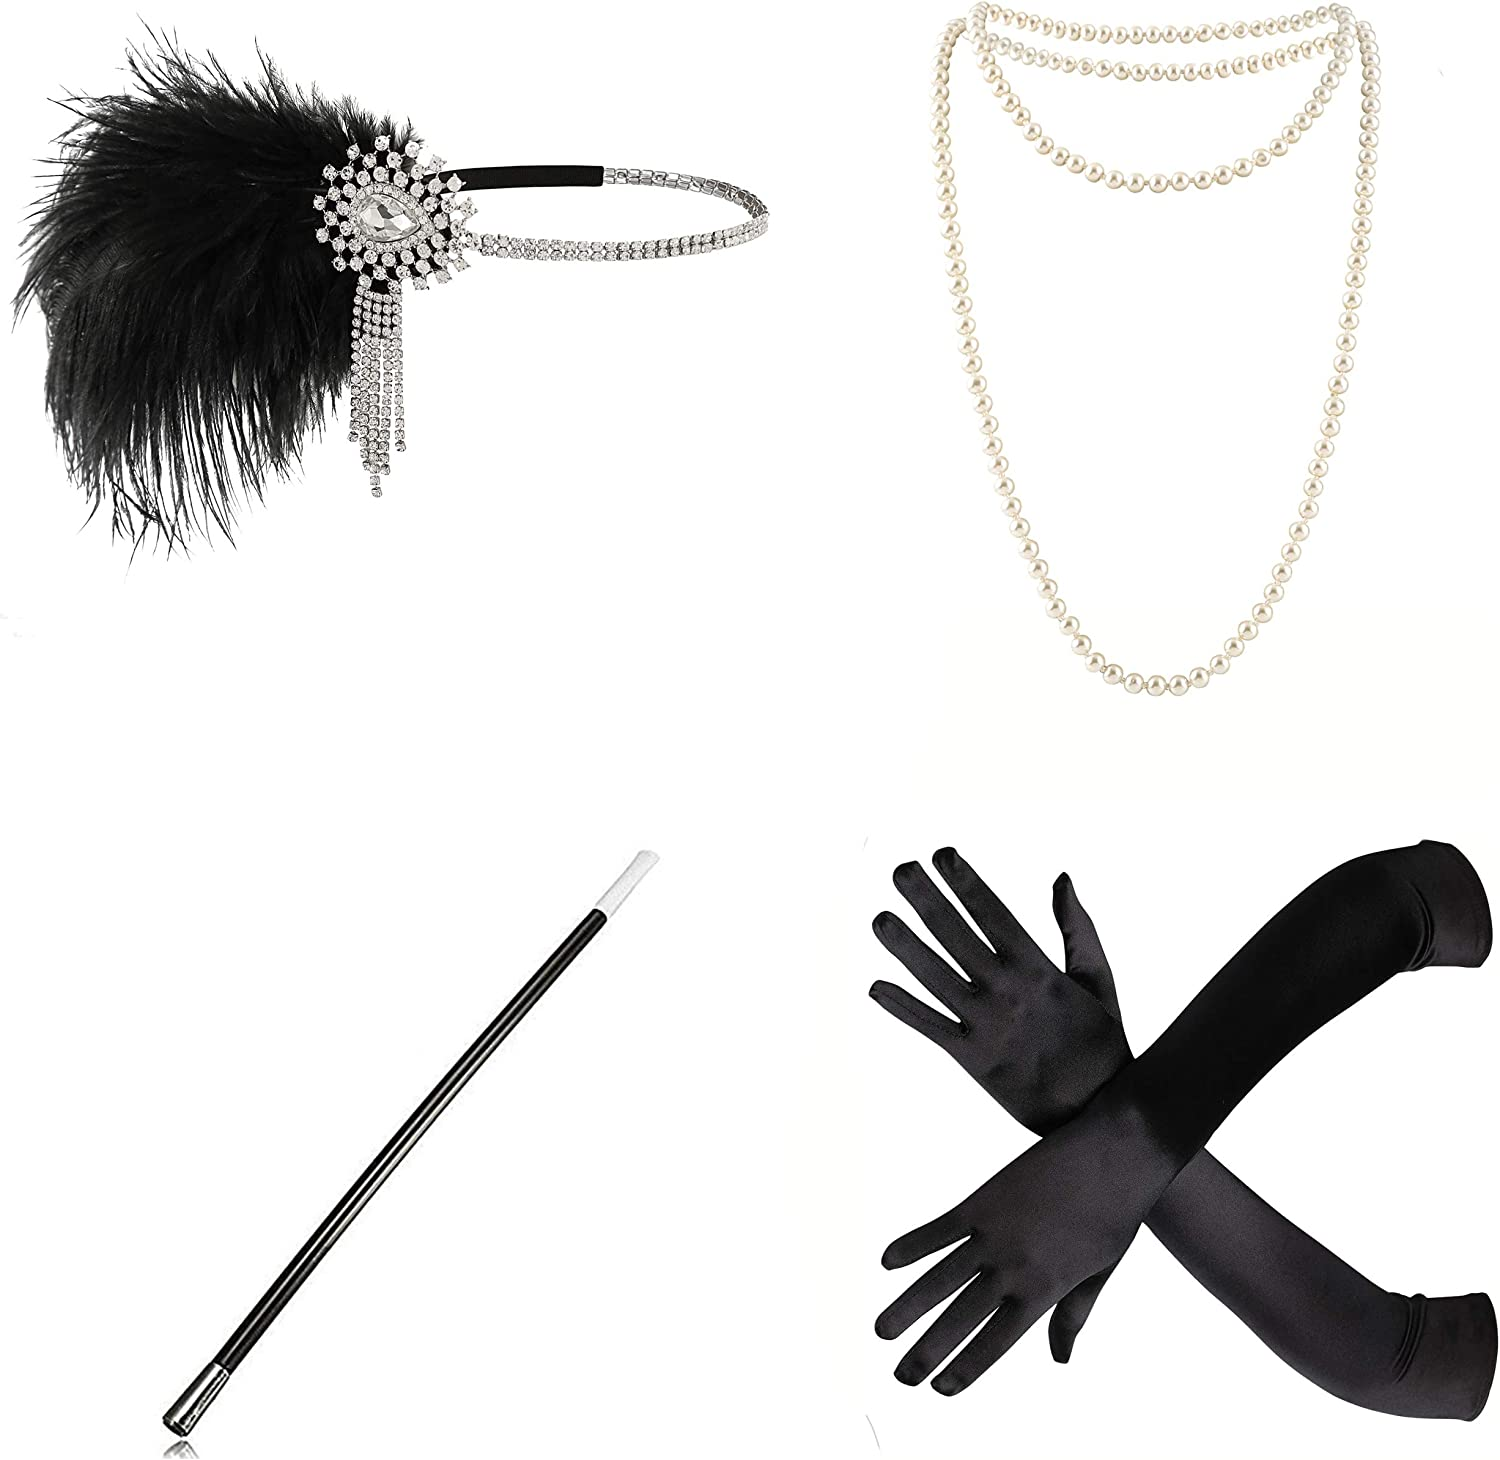 1920s Fashion & Clothing | Roaring 20s Attire Radtengle 1920s Flapper Accessories Set Feather Headband Pearl Necklace Black Gloves with Cigarette Holder Gatsby Costume Metme $20.99 AT vintagedancer.com